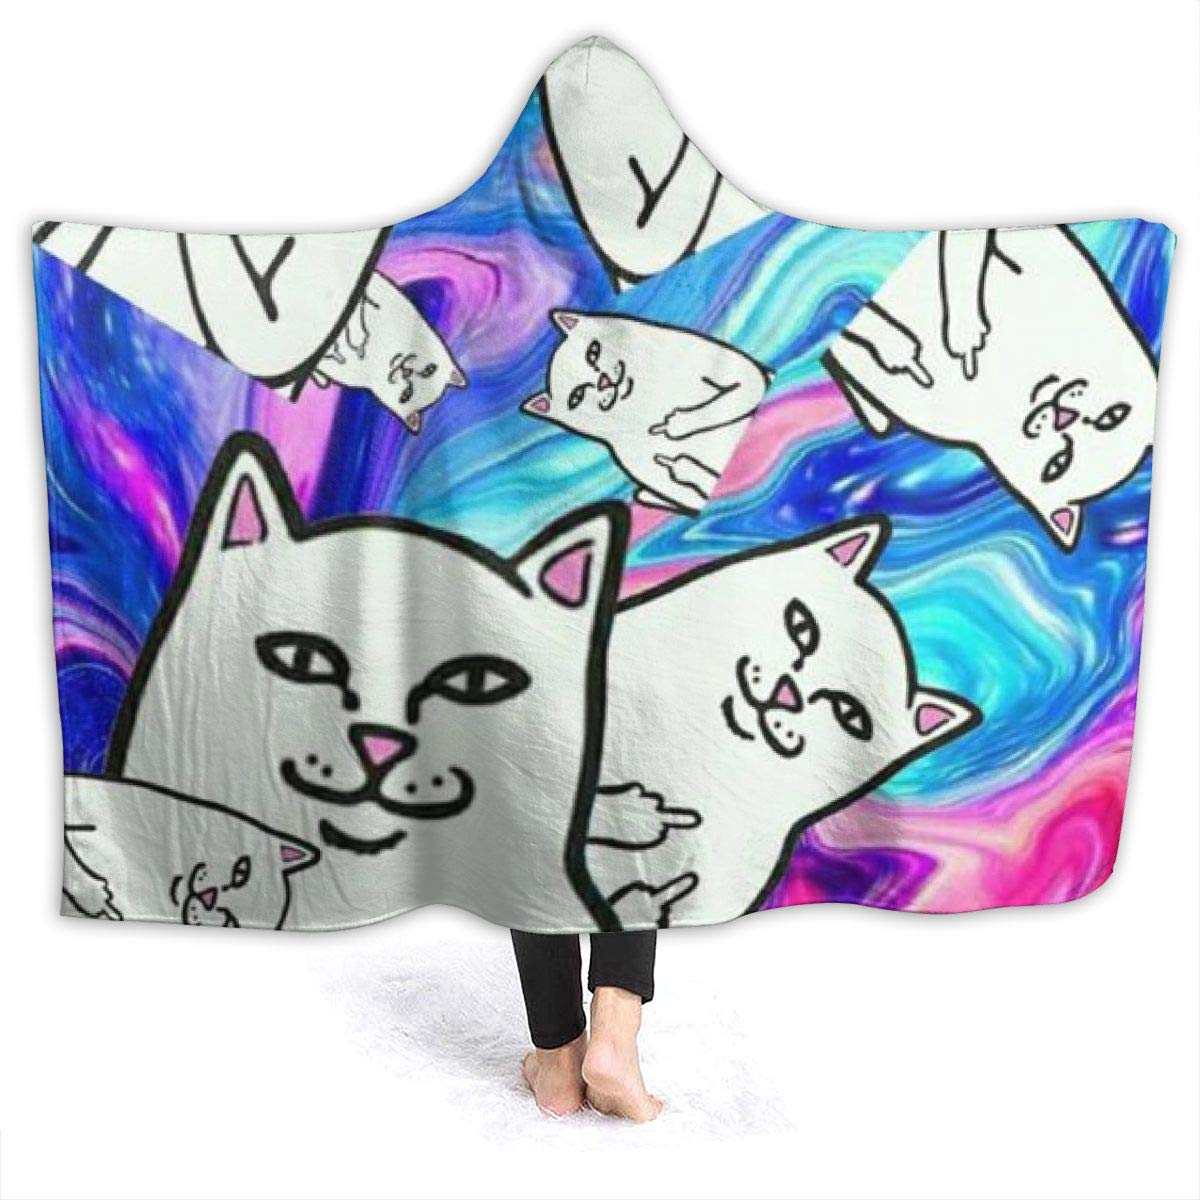 Lord Nermal Middle Finger Cat Many Oversized Hooded Blanket Flannel Super Soft Cape Wrap Wearable Cuddle Multi Size Optional by Criss